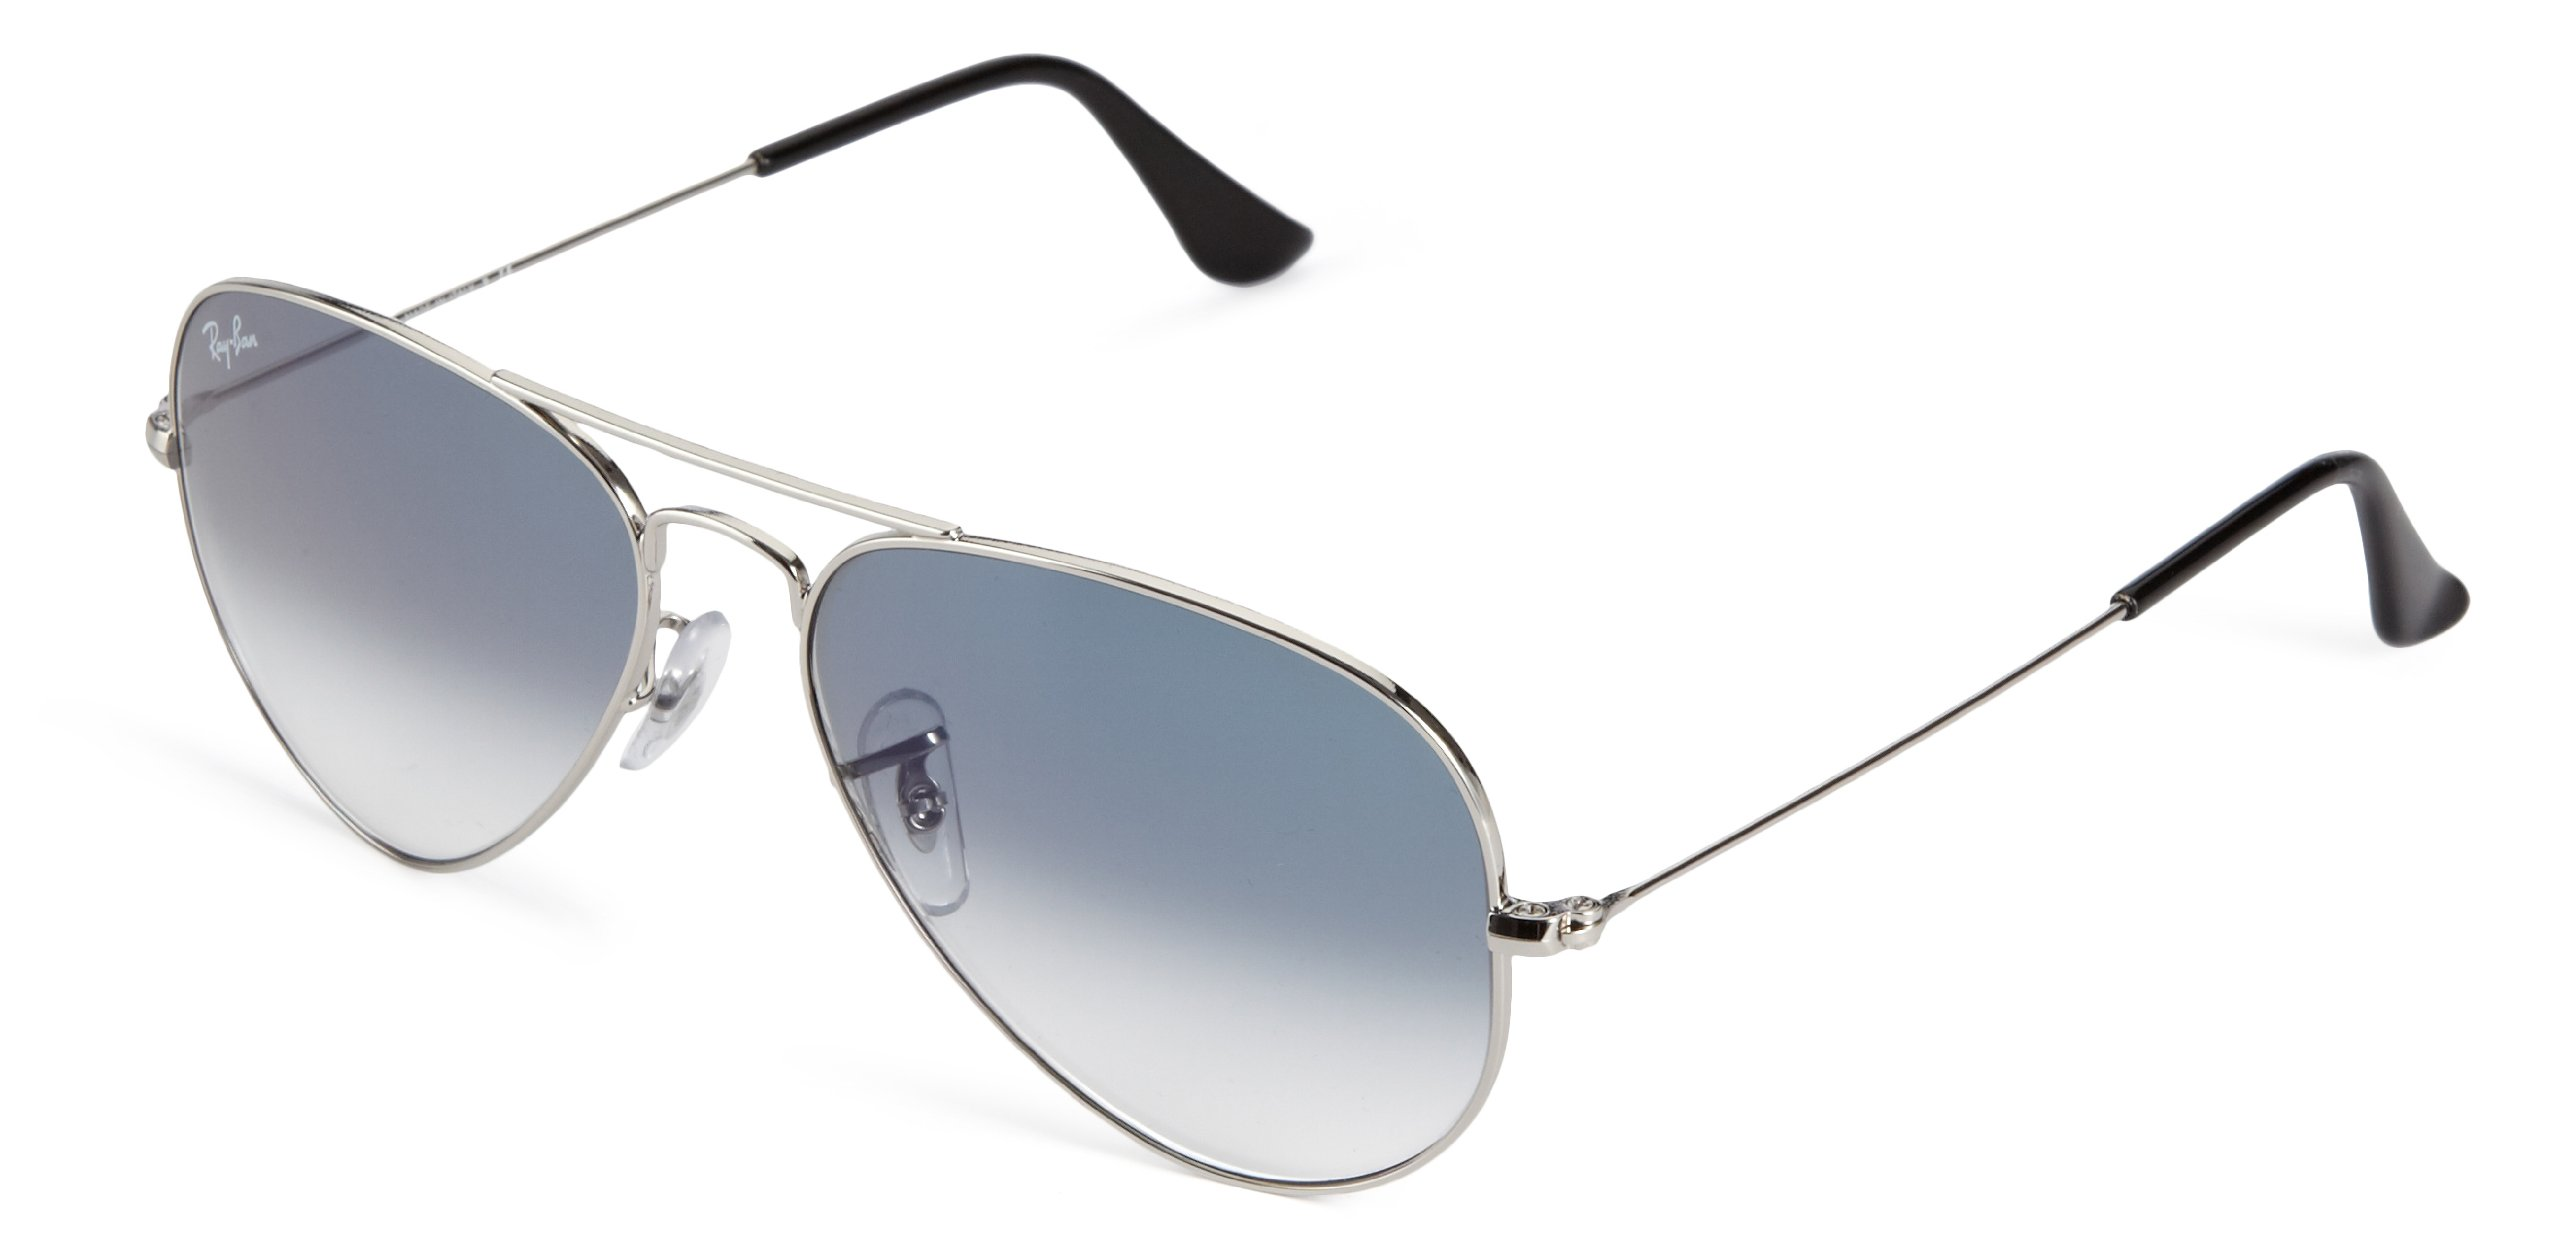 Ray-Ban AVIATOR LARGE METAL - SILVER Frame CRYSTAL GRADIENT LIGHT BLUE Lenses 58mm Non-Polarized